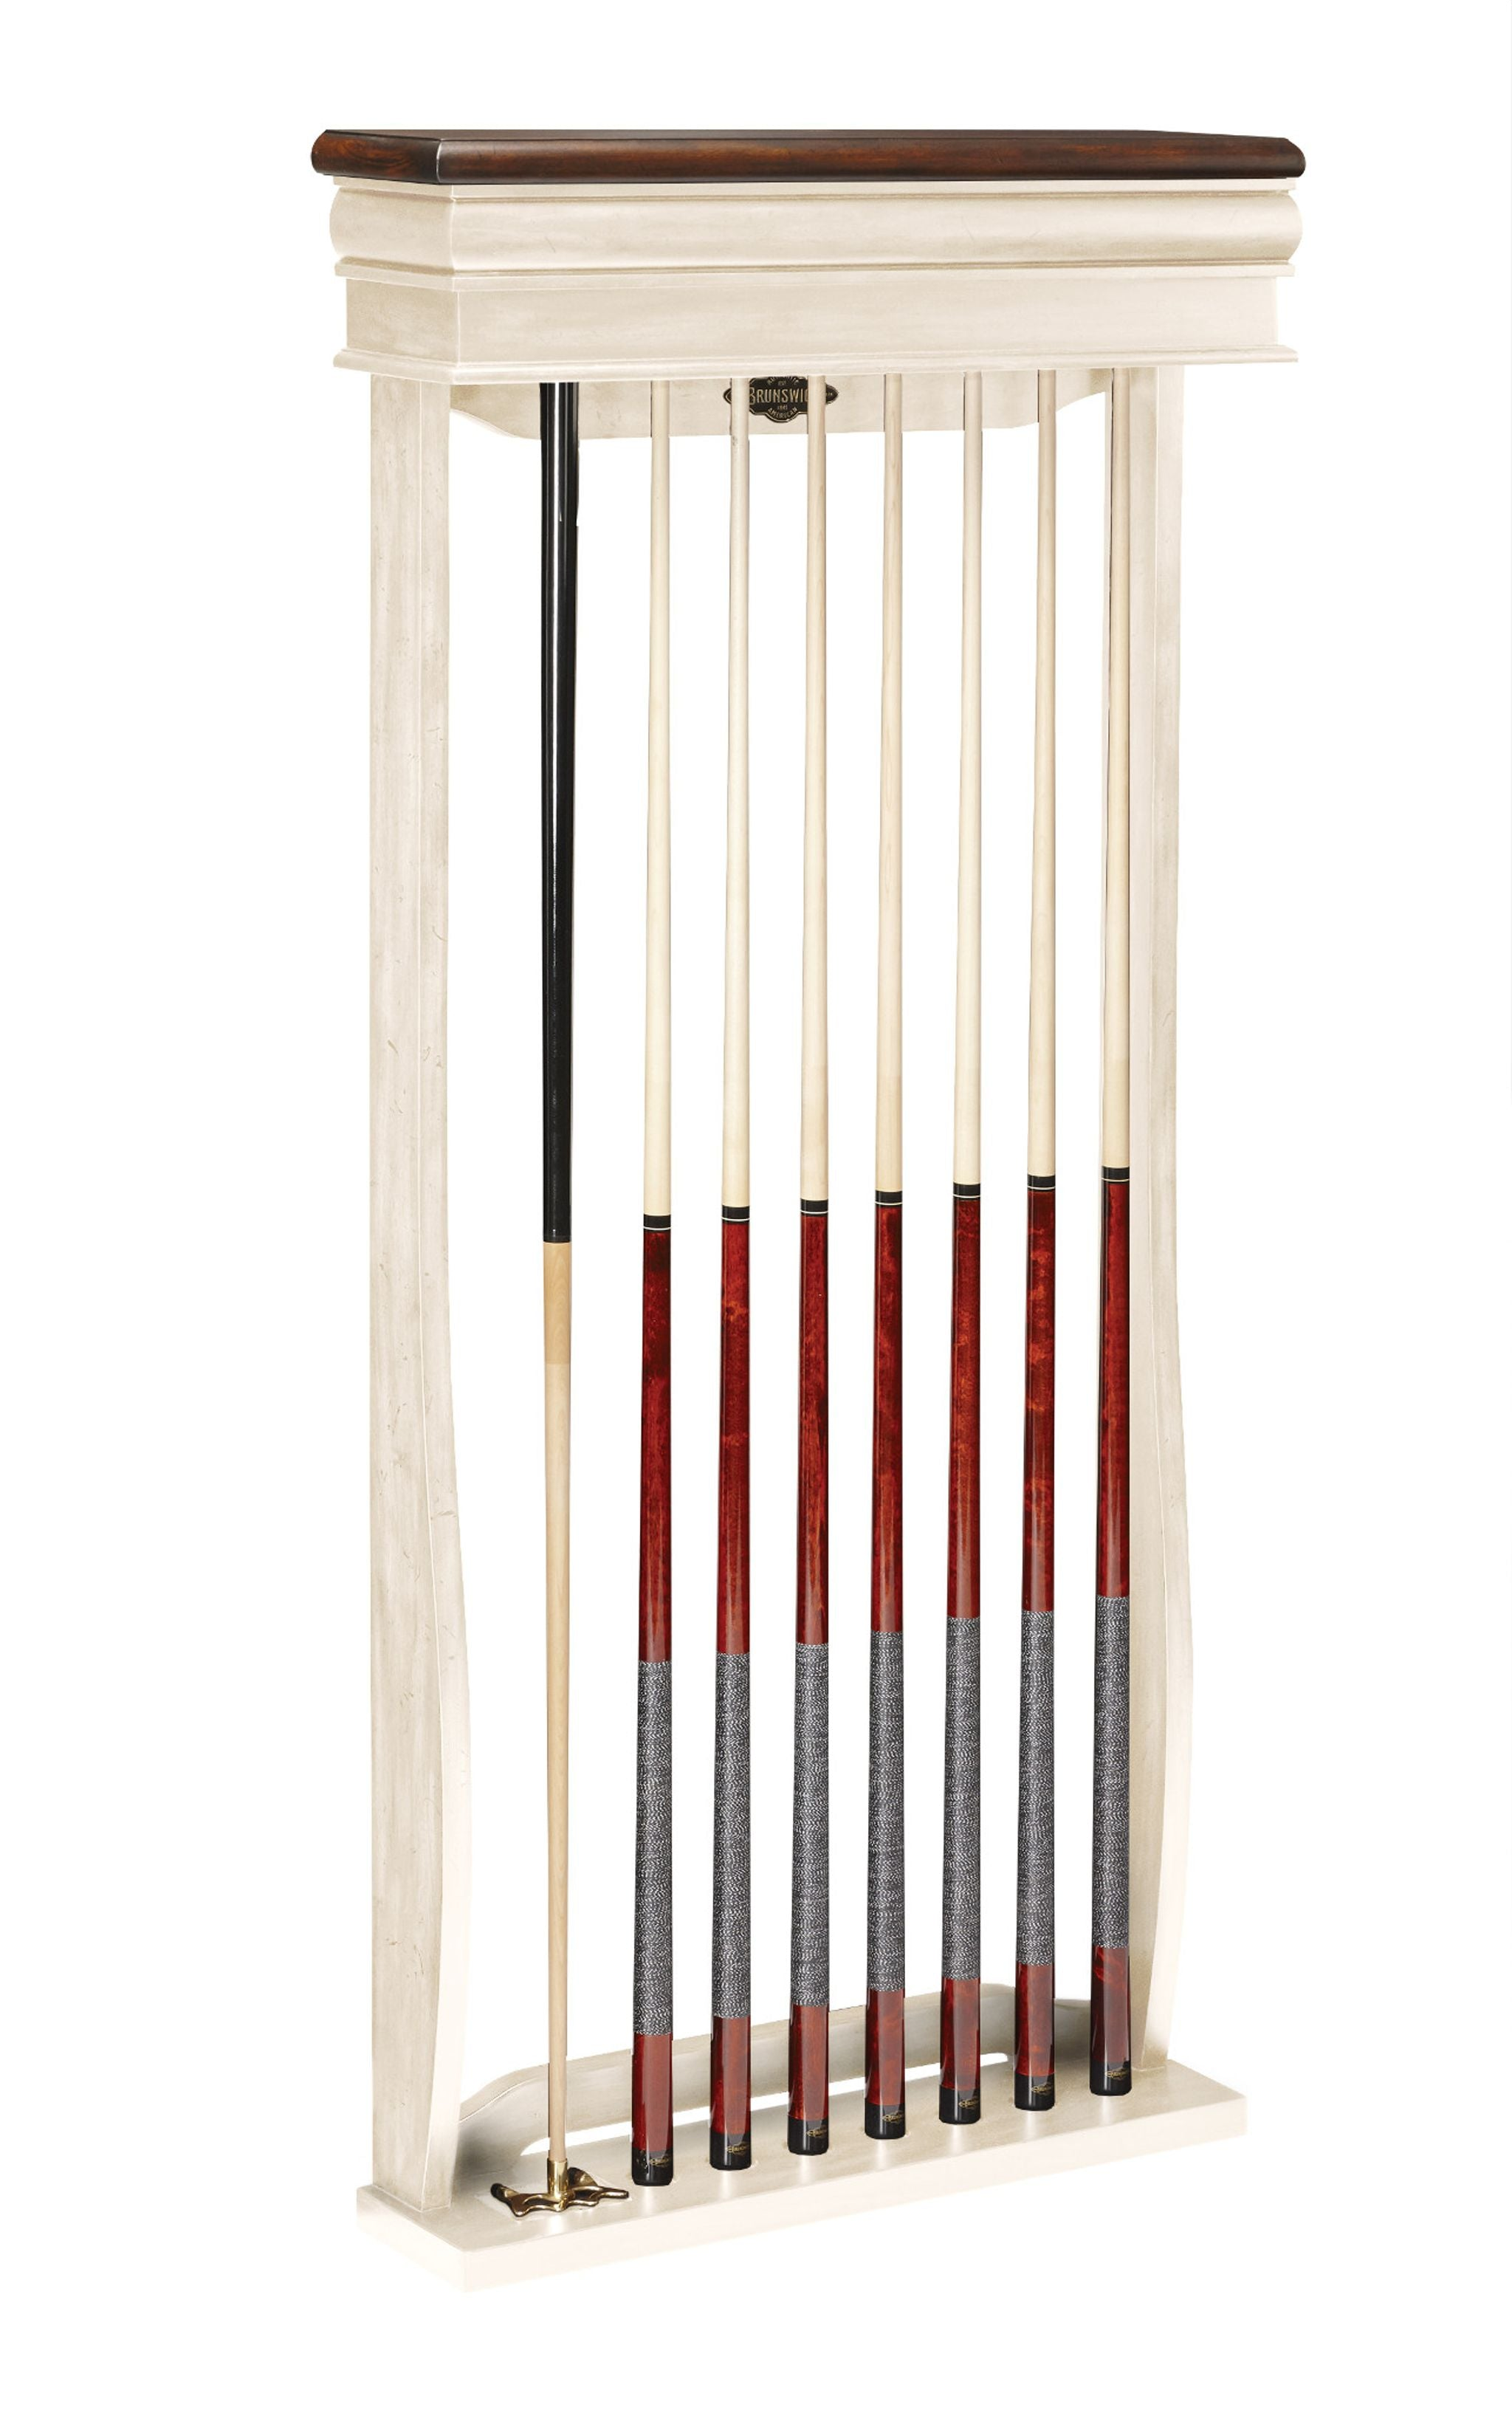 MacKenzie Wall Rack - Blatt Billiards